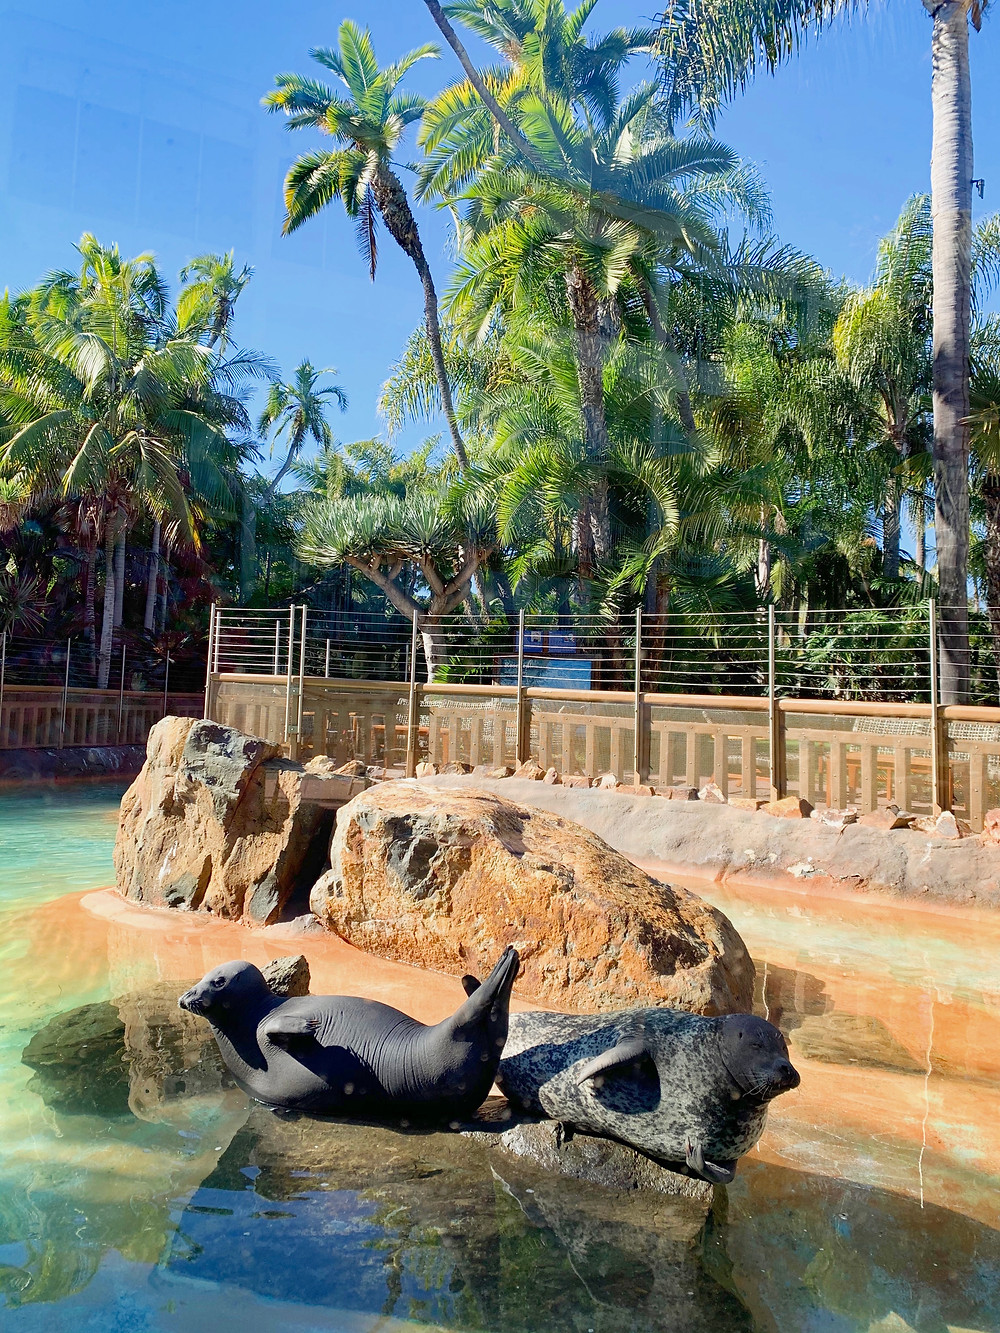 Bahia Resort Hotel Mission Bay Two 2 Rescued Harbor Seals San Diego Kids Free Secret Zoos Wild Animals Hidden Gem